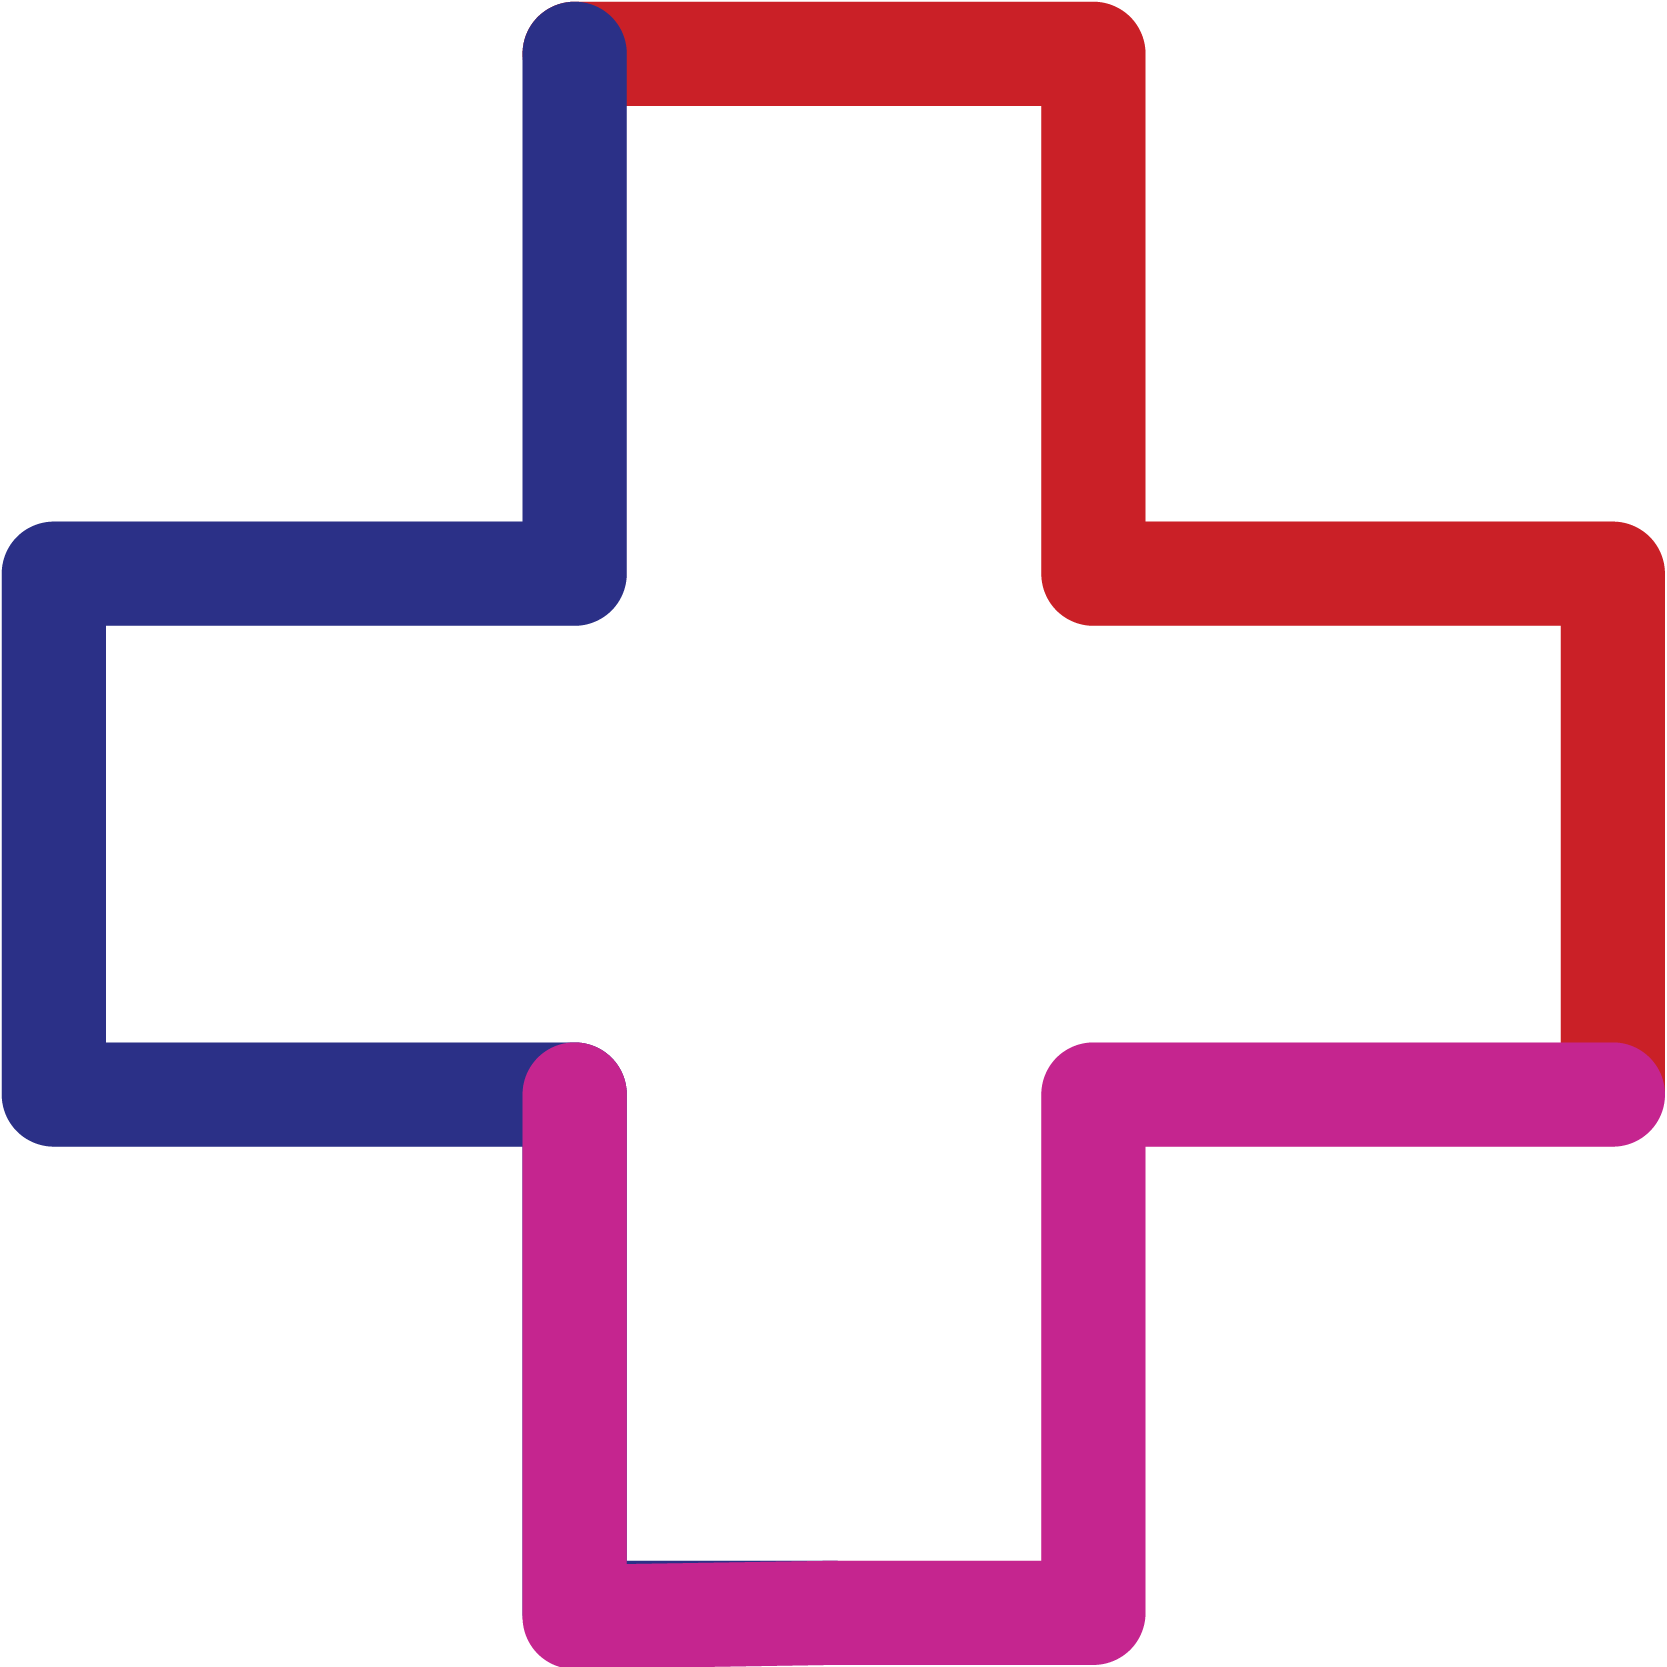 jj-icon-health-cross-multi-rgb-png-jnjiconhealthcrossmultirgb.png